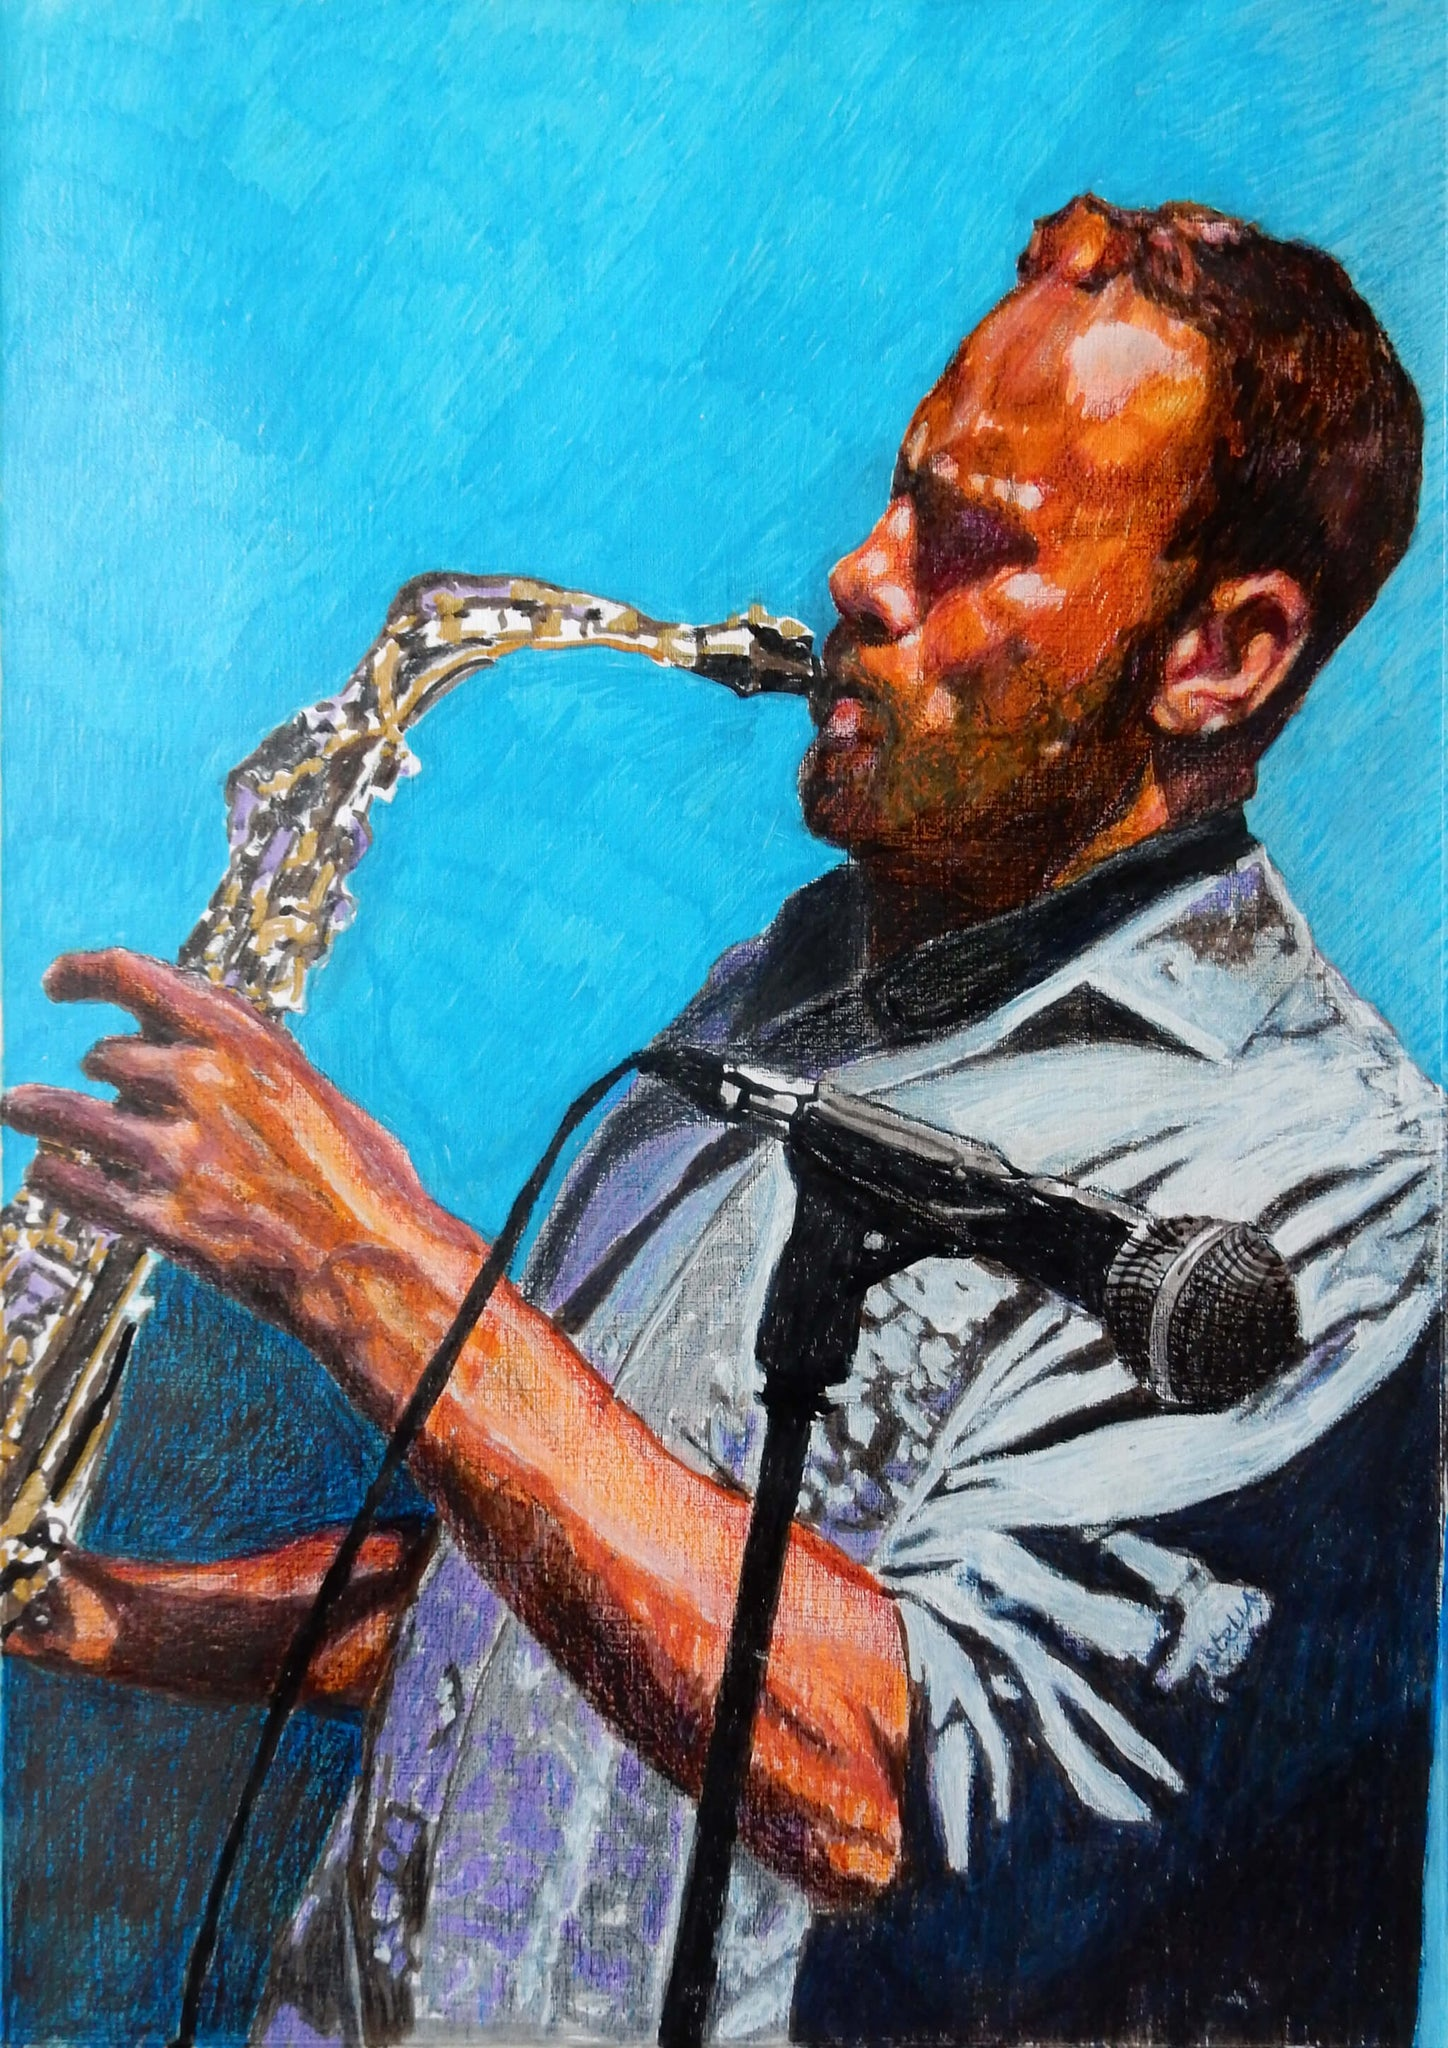 Johannes Bowling saxophonist Doc Bowling and his blues professors commissioned portrait pencil on paper artwork by Stella Tooth.